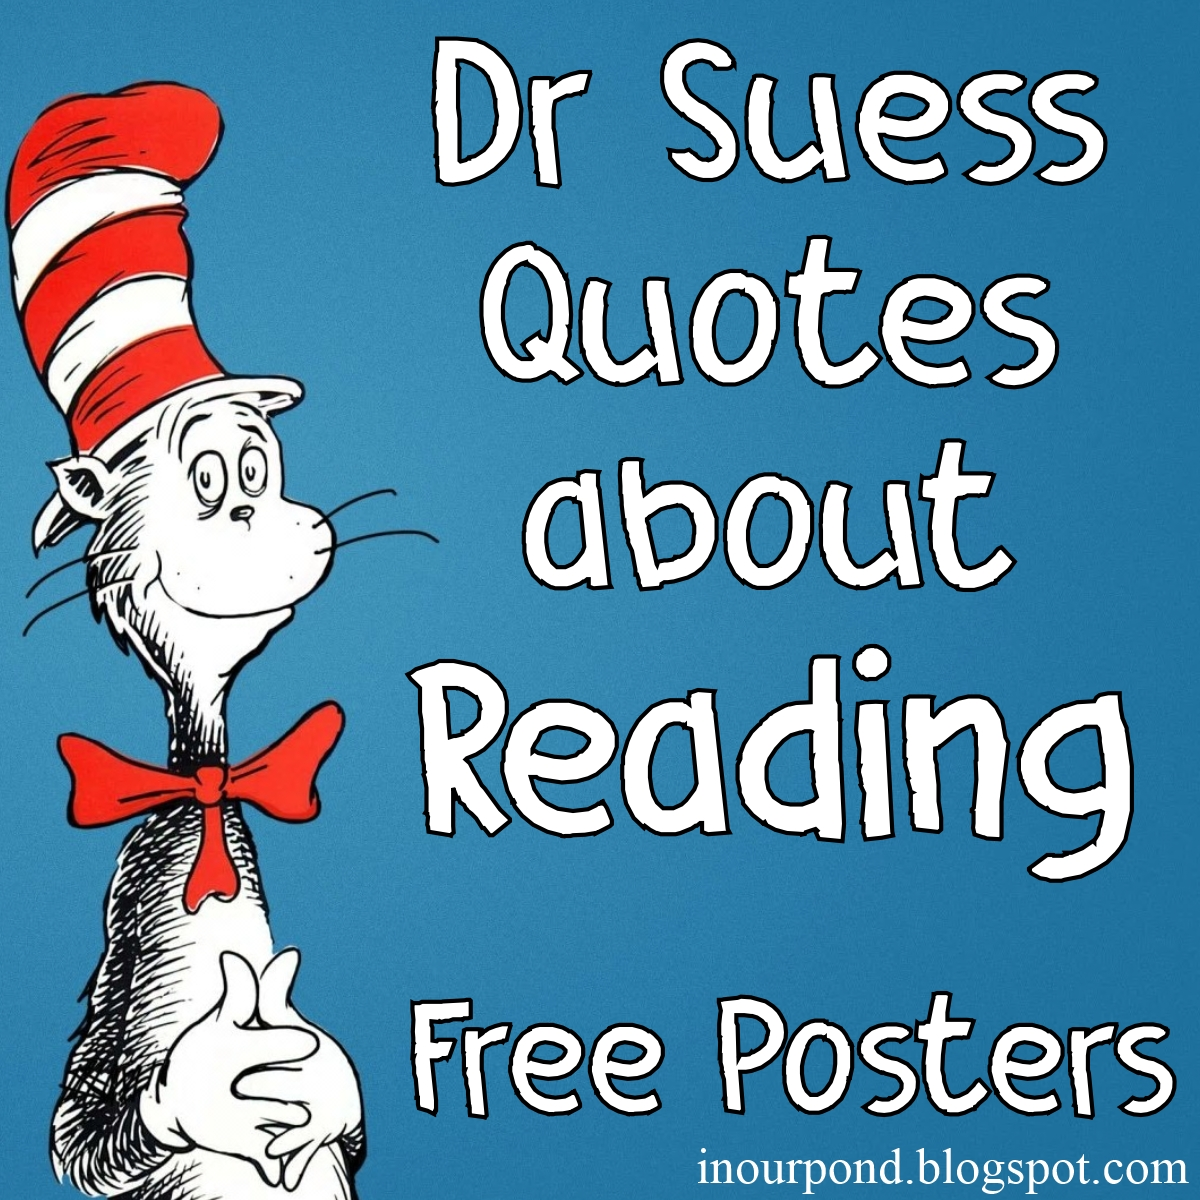 It's just a graphic of Juicy Printable Dr Seuss Quotes